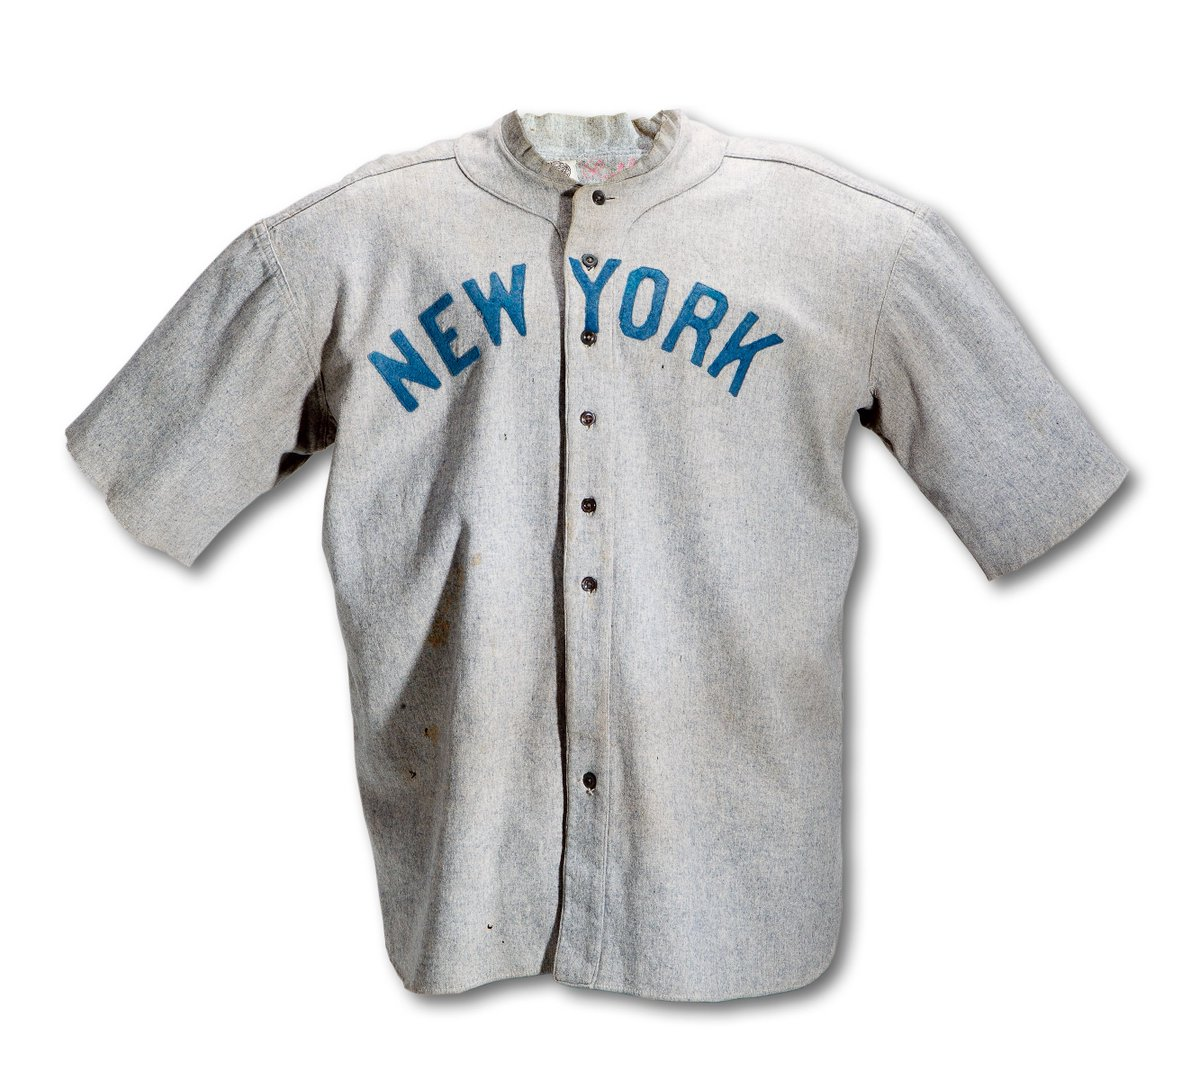 0f9a1dfd786 (3/3) It's expected to break the Guinness World Record for sports  collecting, currently held by the same Babe Ruth for his 1920 Yankee jersey  that sold for ...